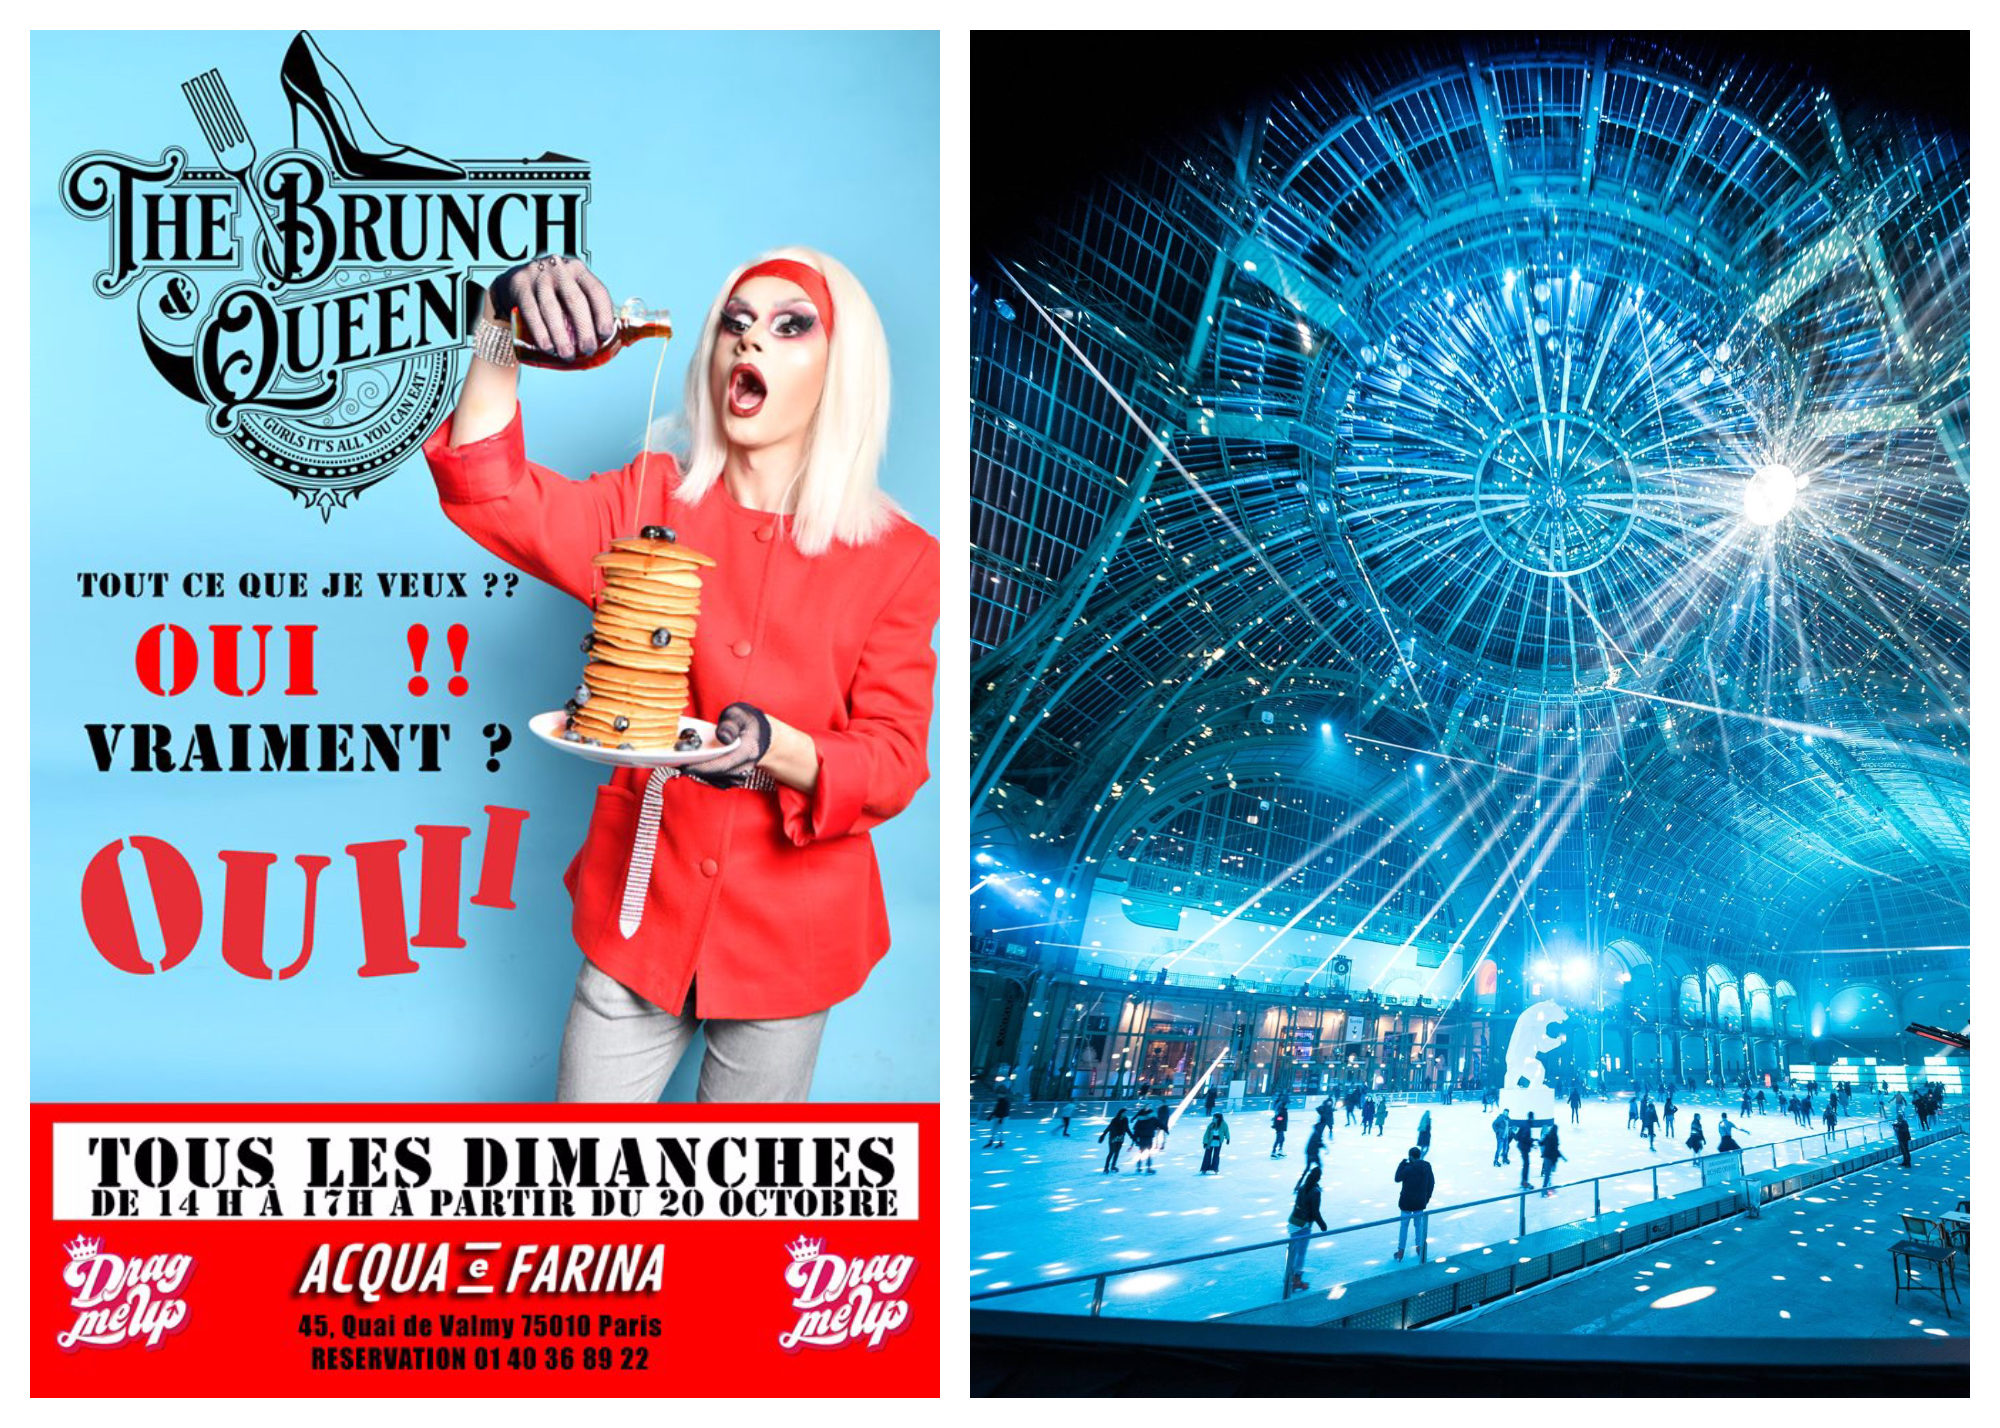 A poster for the event The Brunch Queen in Paris every Sunday (left). An evening at the Grand Palais ice rink, lit up with blue lights (right).